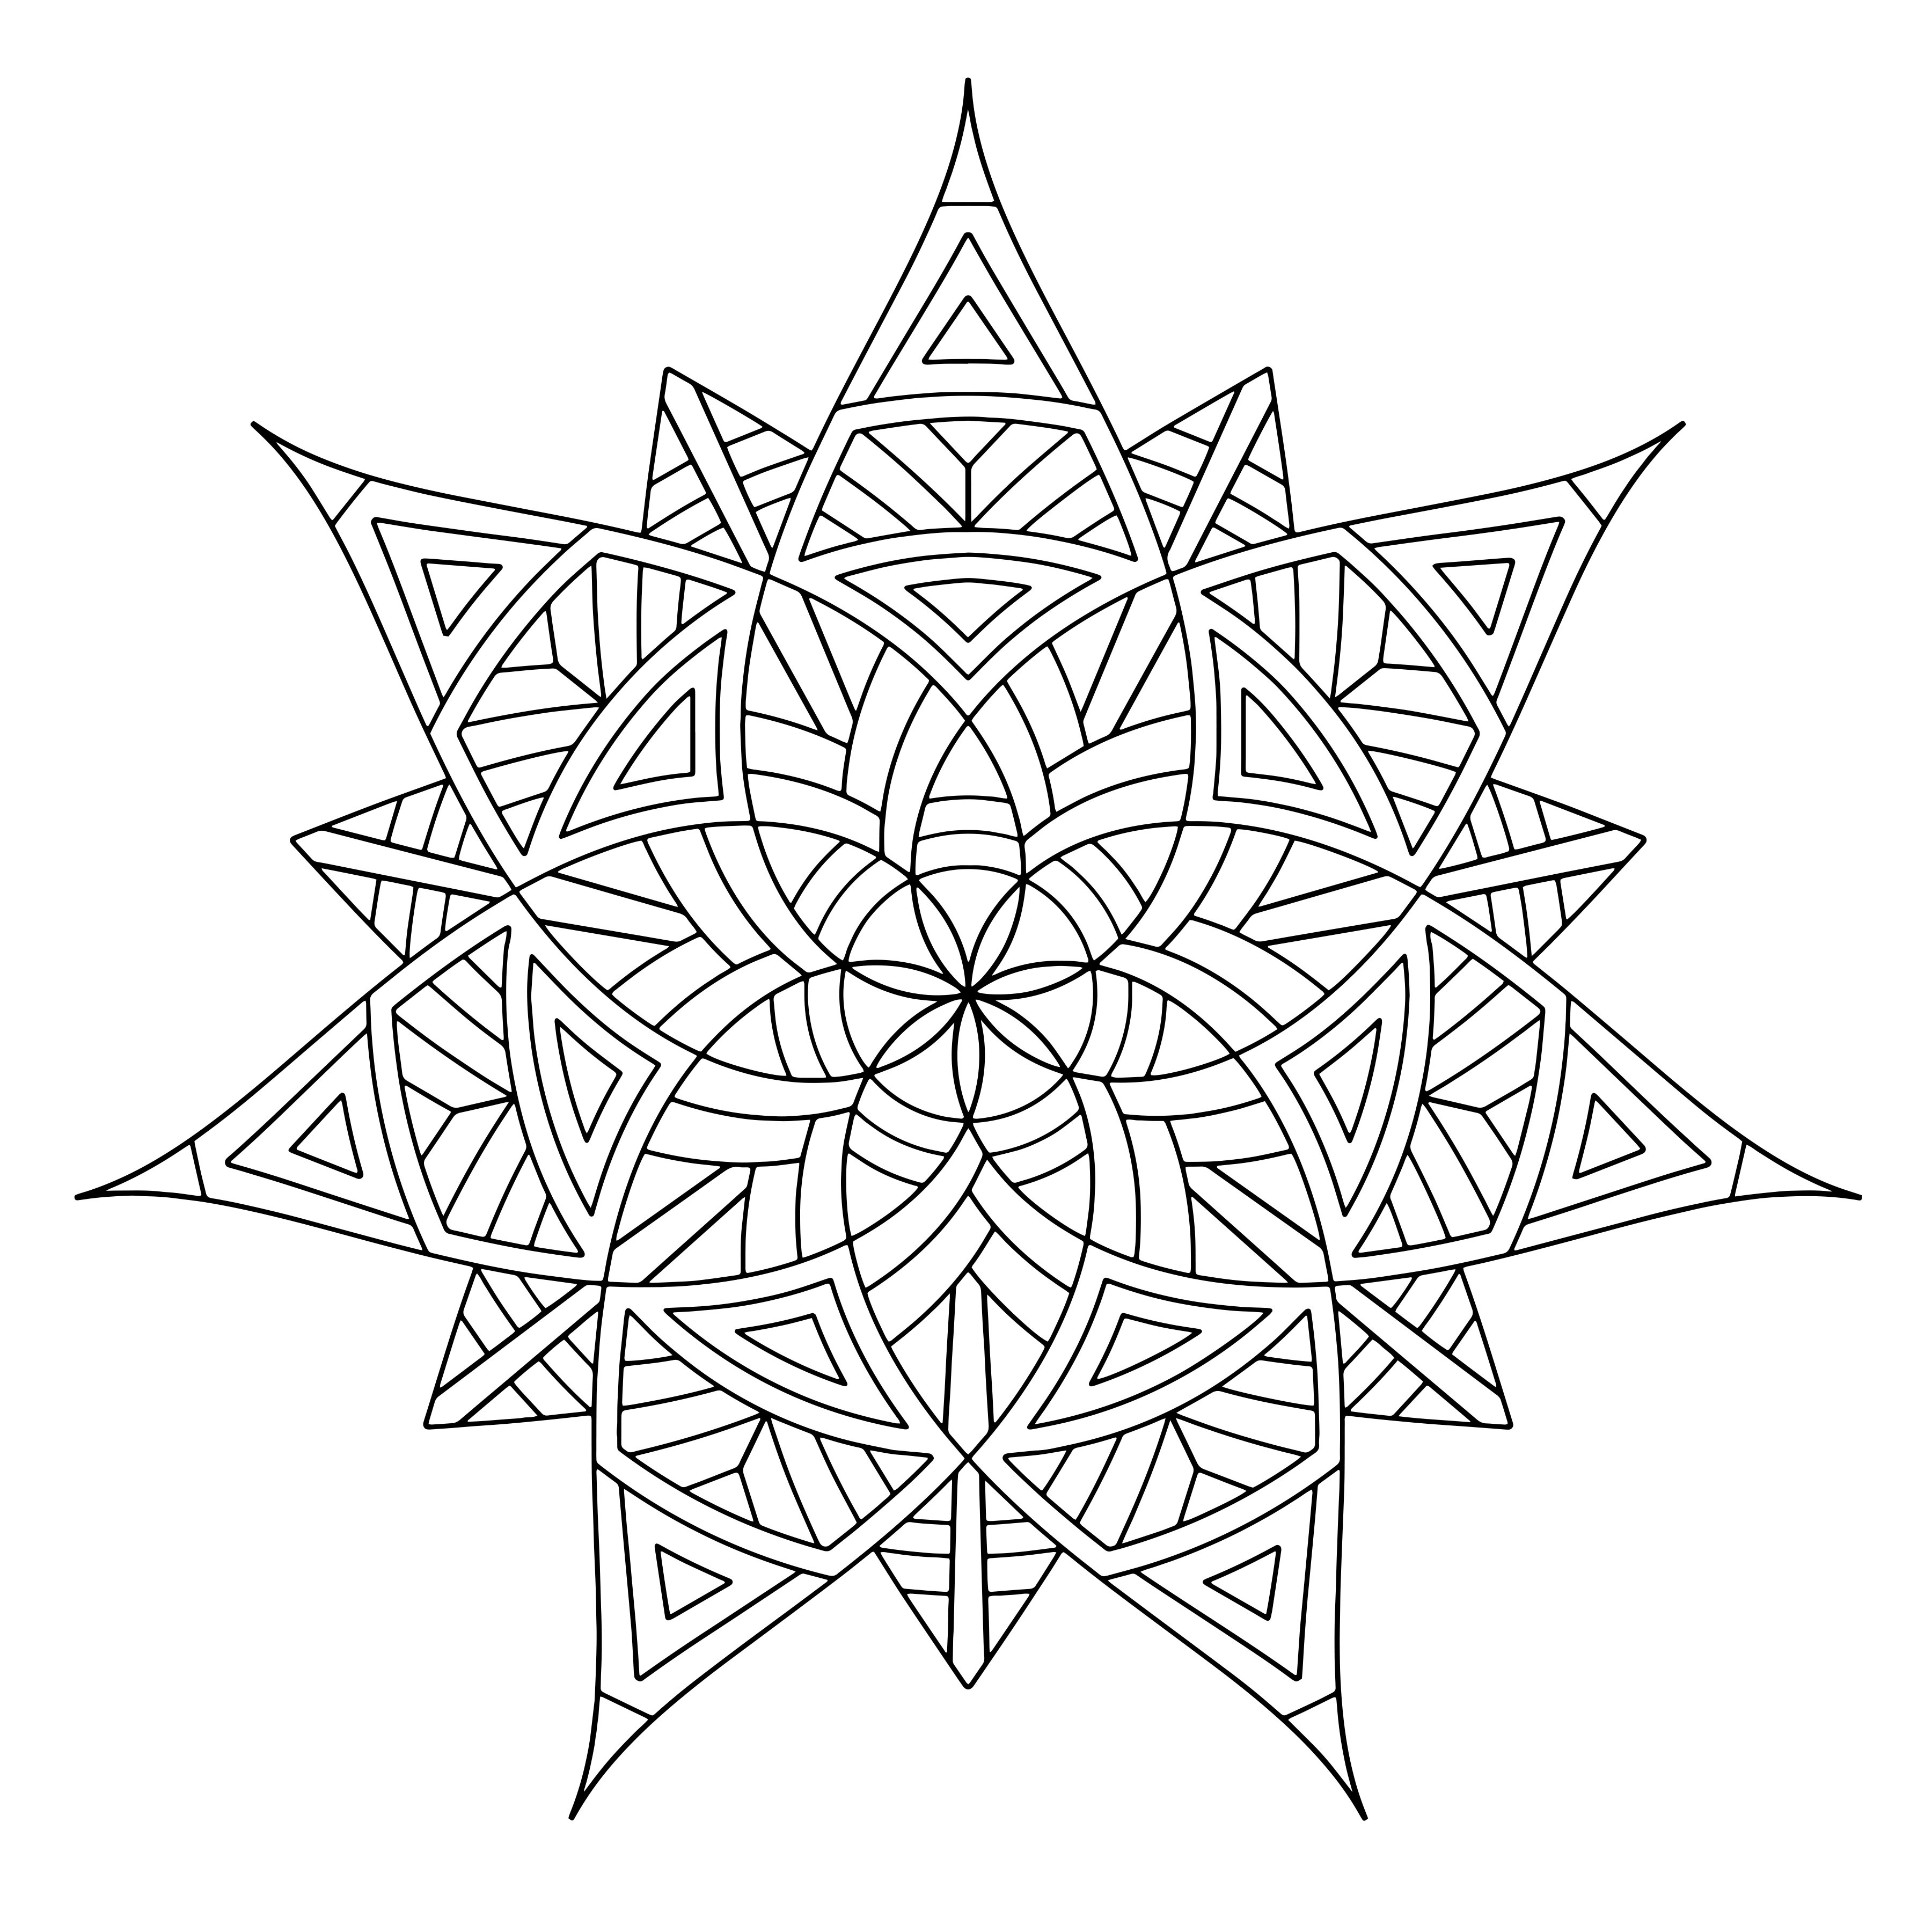 coloring pages for adults patterns 15 crazy busy coloring pages for adults free coloring coloring patterns adults pages for